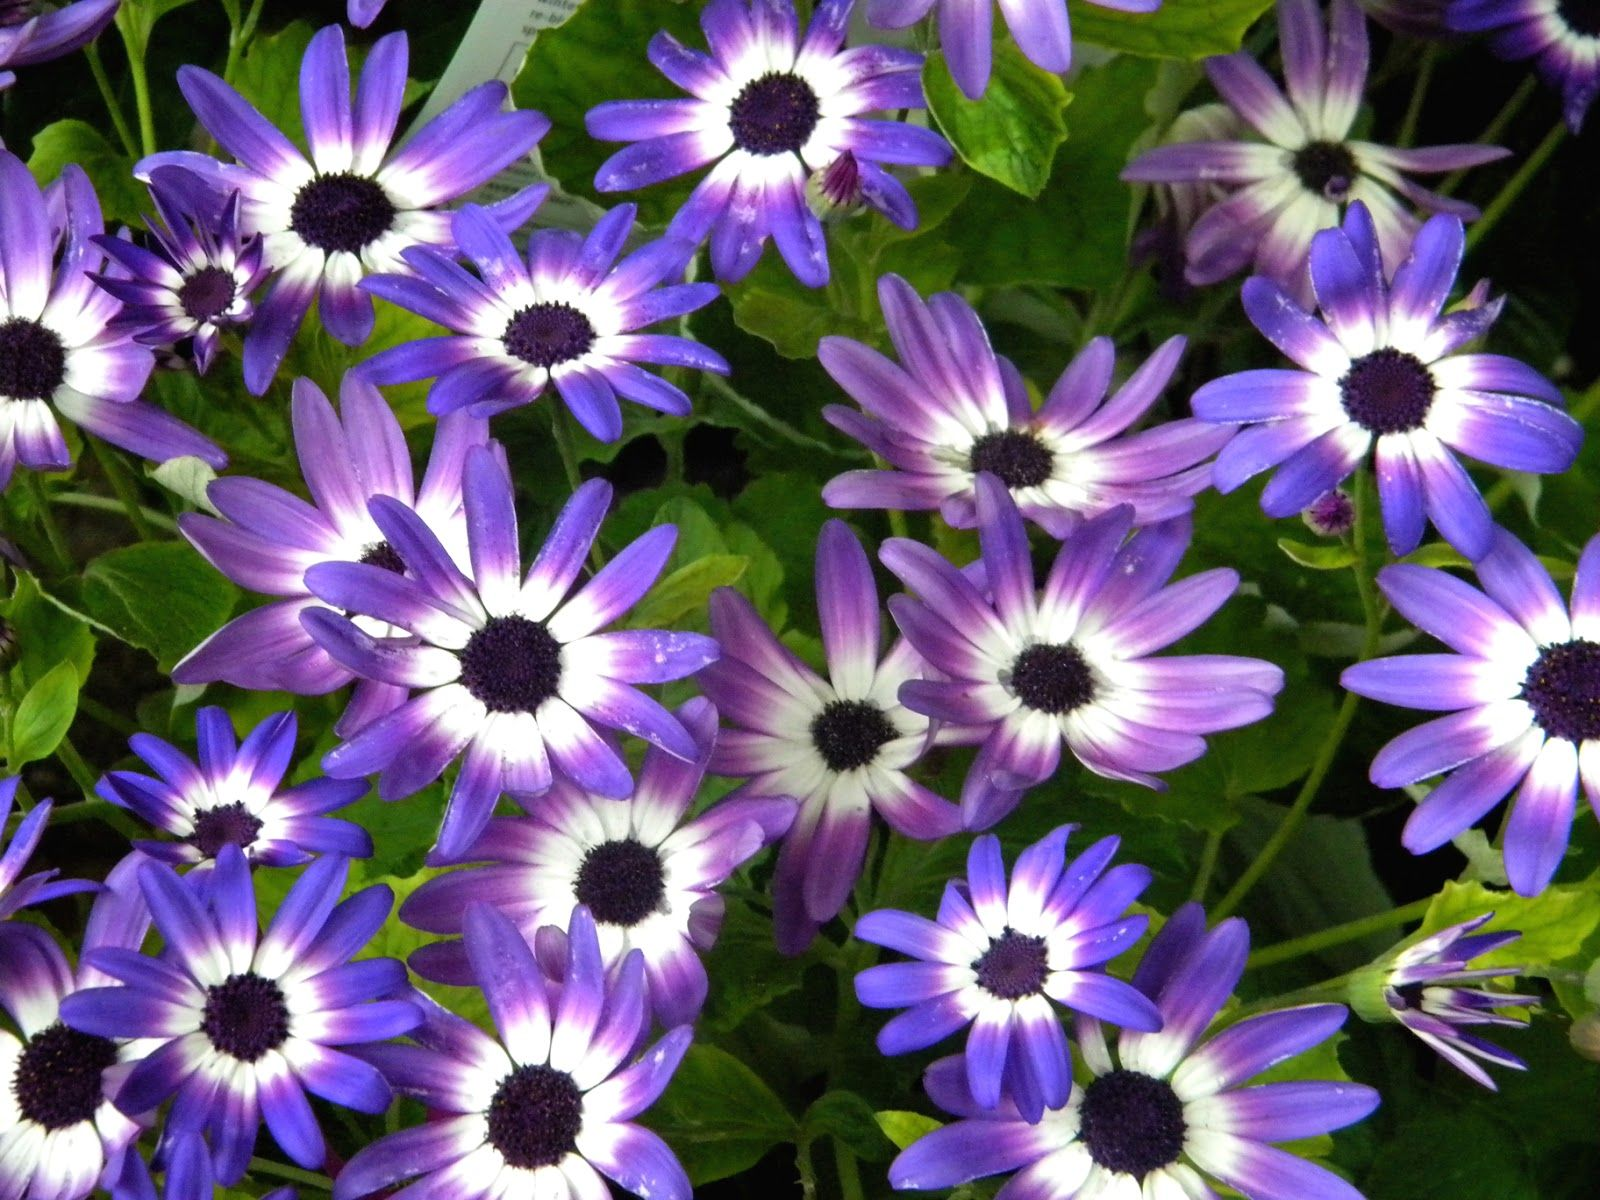 Excellent purple white flowers names ideas images for wedding gown gallery of purple white flowers names blue daisy violet daisies spring flowers blue daisies signal the mightylinksfo